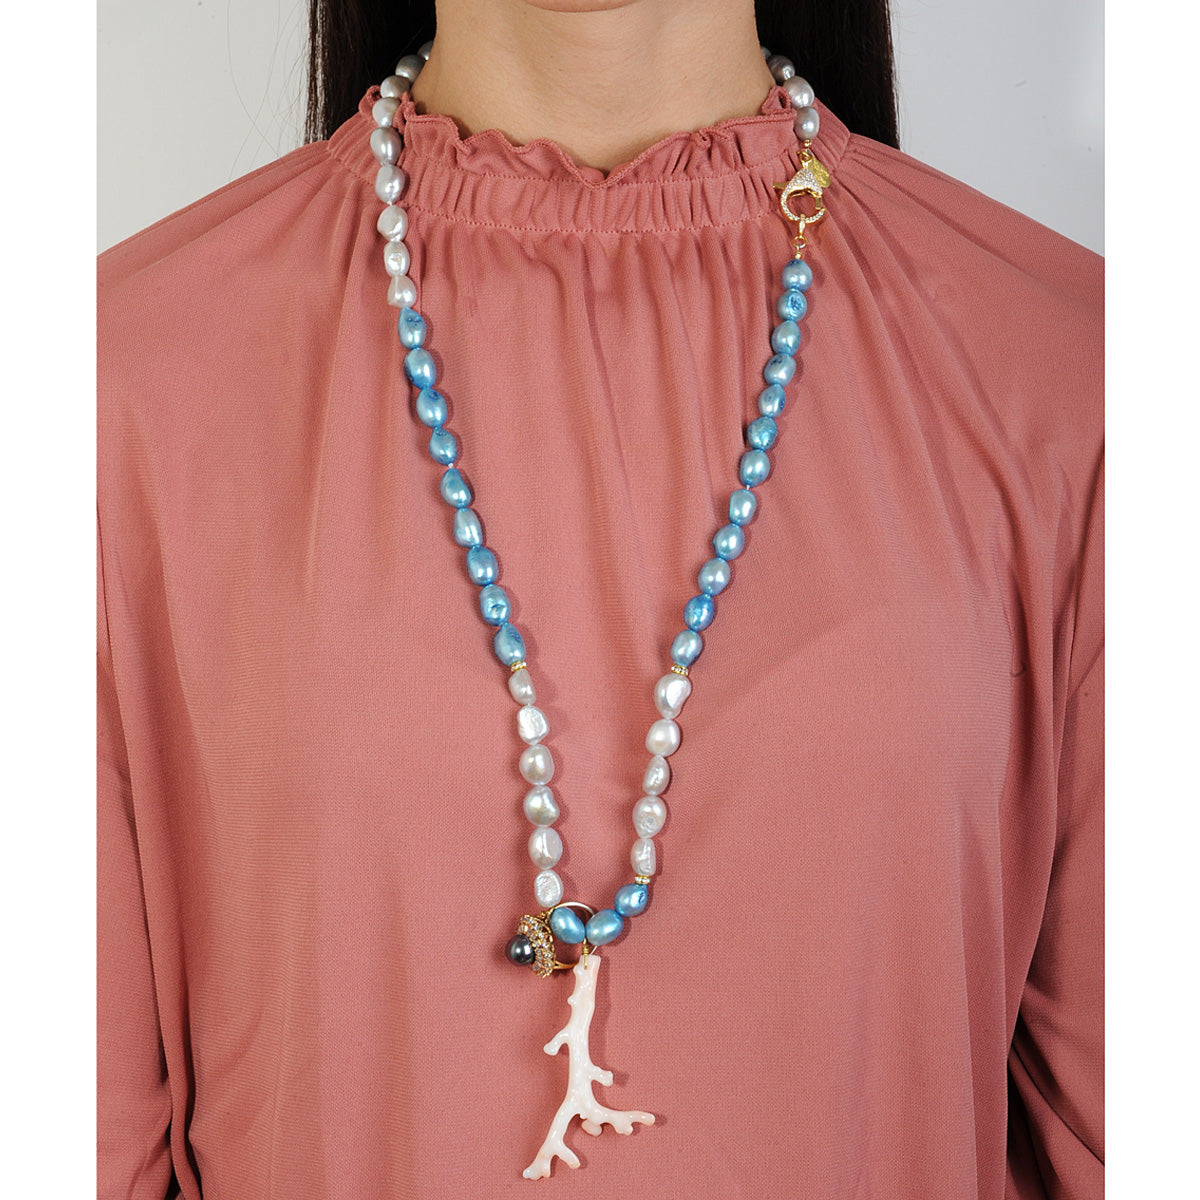 Long necklace with fresh water pearls grey blue a coral and vintage crystal ring katerina psoma on model